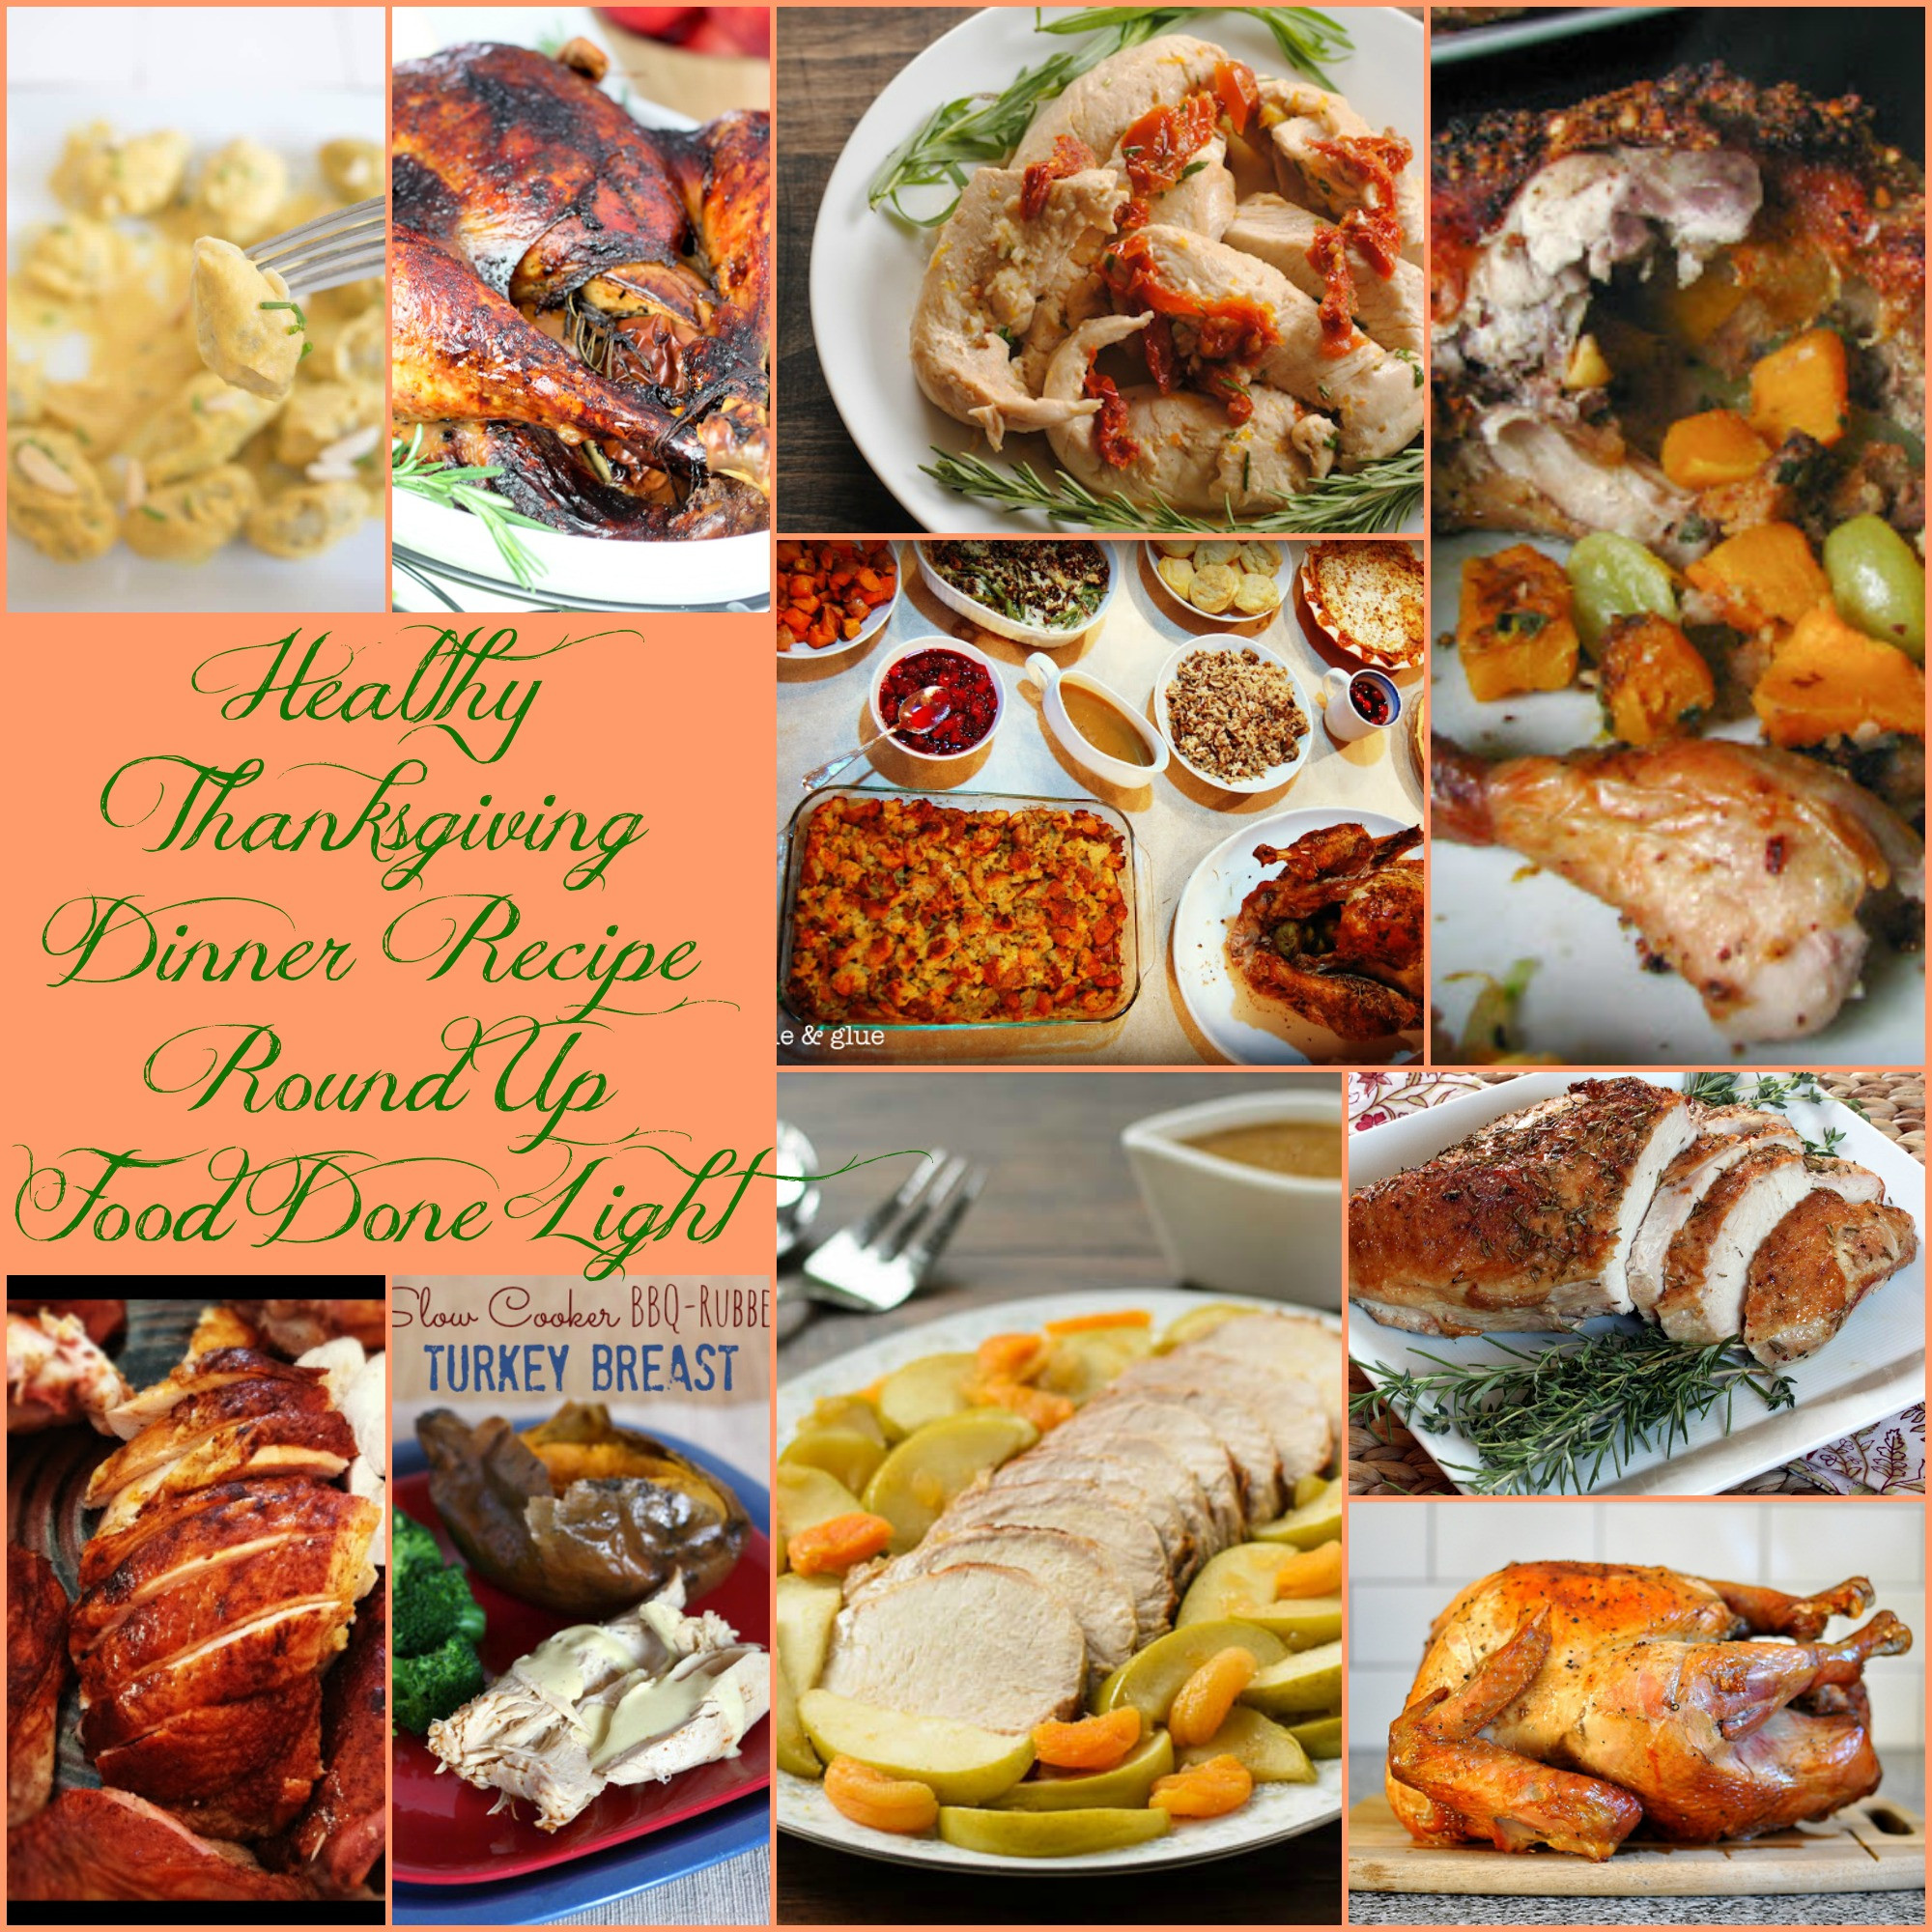 Recipes For Thanksgiving Dinner  Healthy Thanksgiving Turkey Recipe Round Up Food Done Light